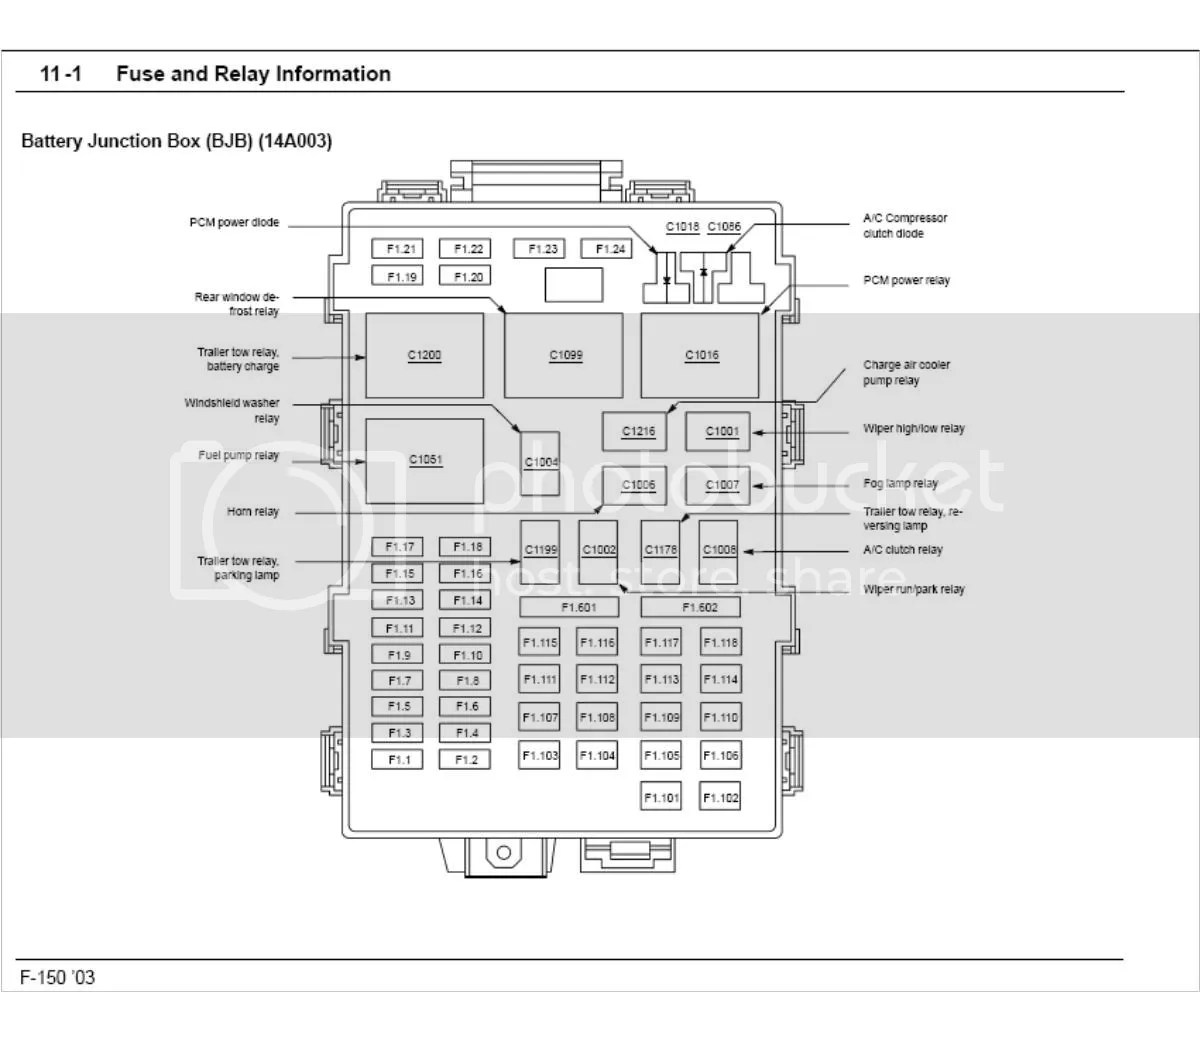 hight resolution of 2003 ford f150 fuse diagram f150 electrical wiring diagrams 03 f150 blower motor 03 f150 fuse box